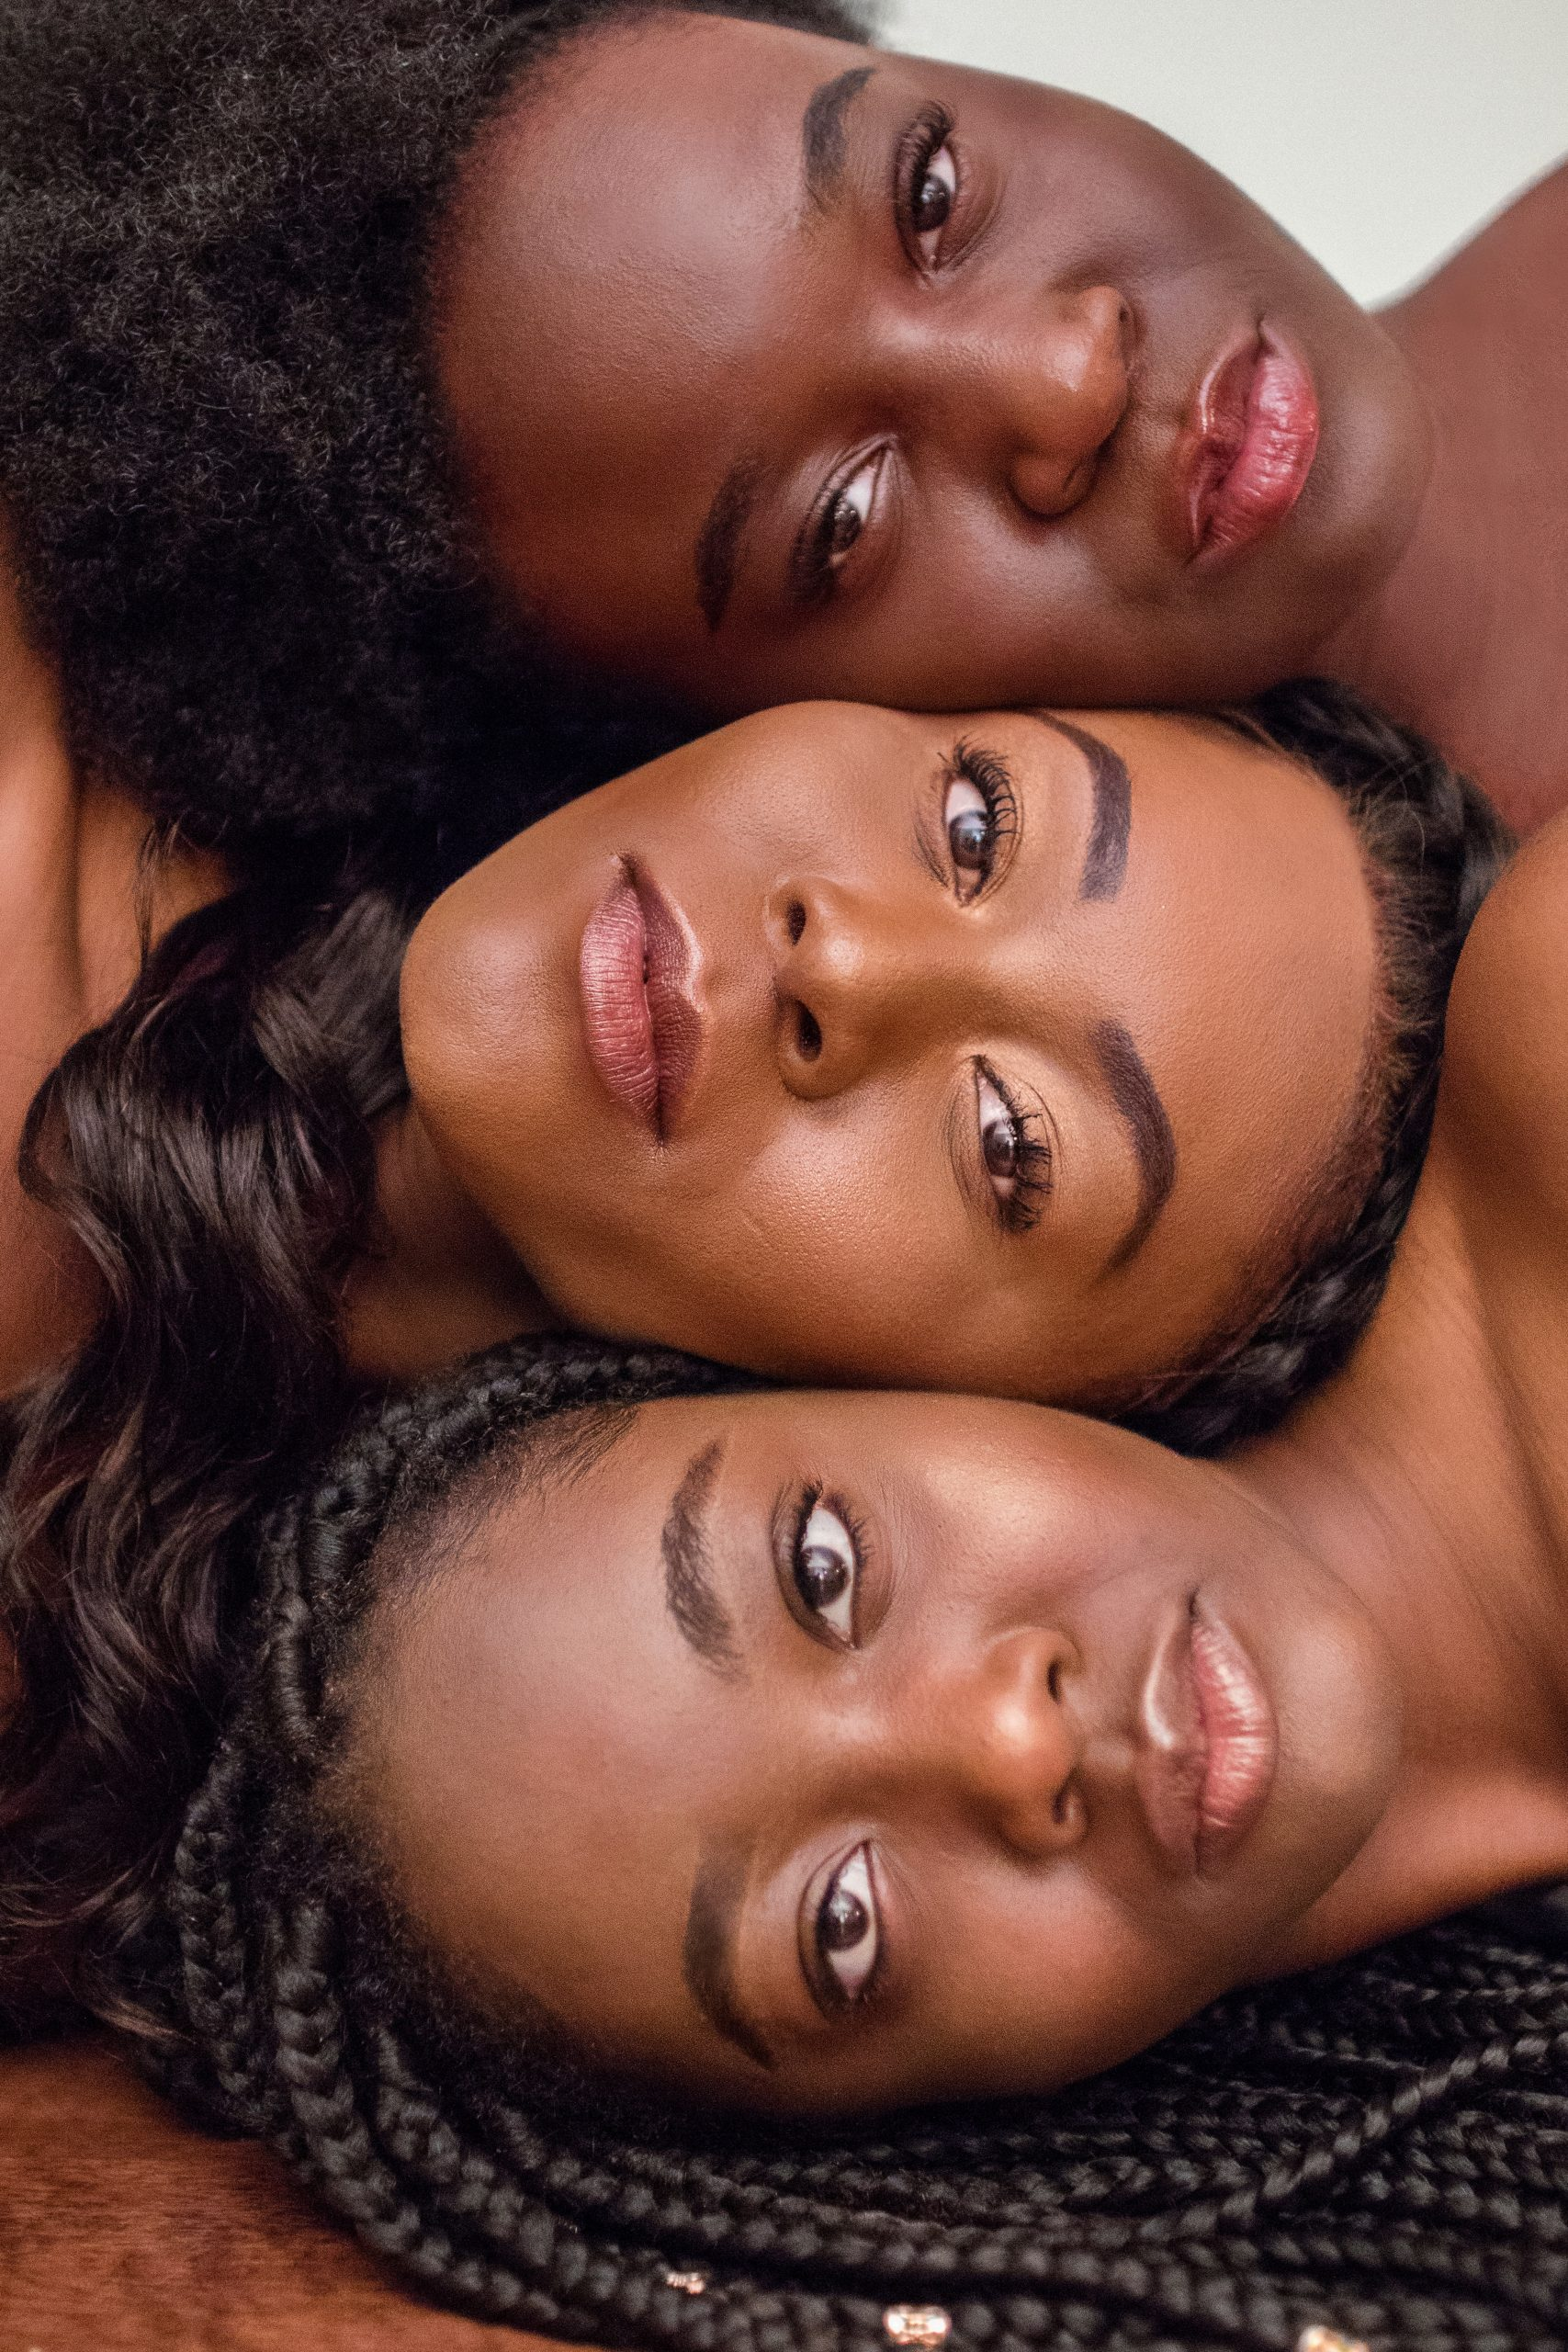 shades of melanin, featured image - let's talk about trauma blog post